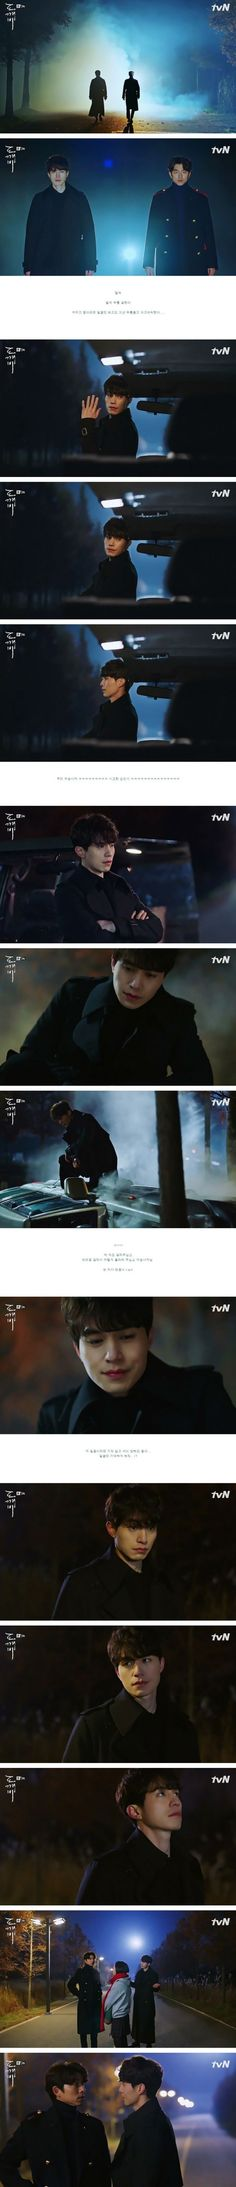 [Spoiler] Added episodes 3 and 4 captures for the Korean drama 'Goblin' Goblin 2016, Goblin The Lonely And Great God, Goblin Korean Drama, Goblin Gong Yoo, Shu Qi, Goblin Kdrama, Weightlifting Fairy Kim Bok Joo, Yook Sungjae, People Of Interest